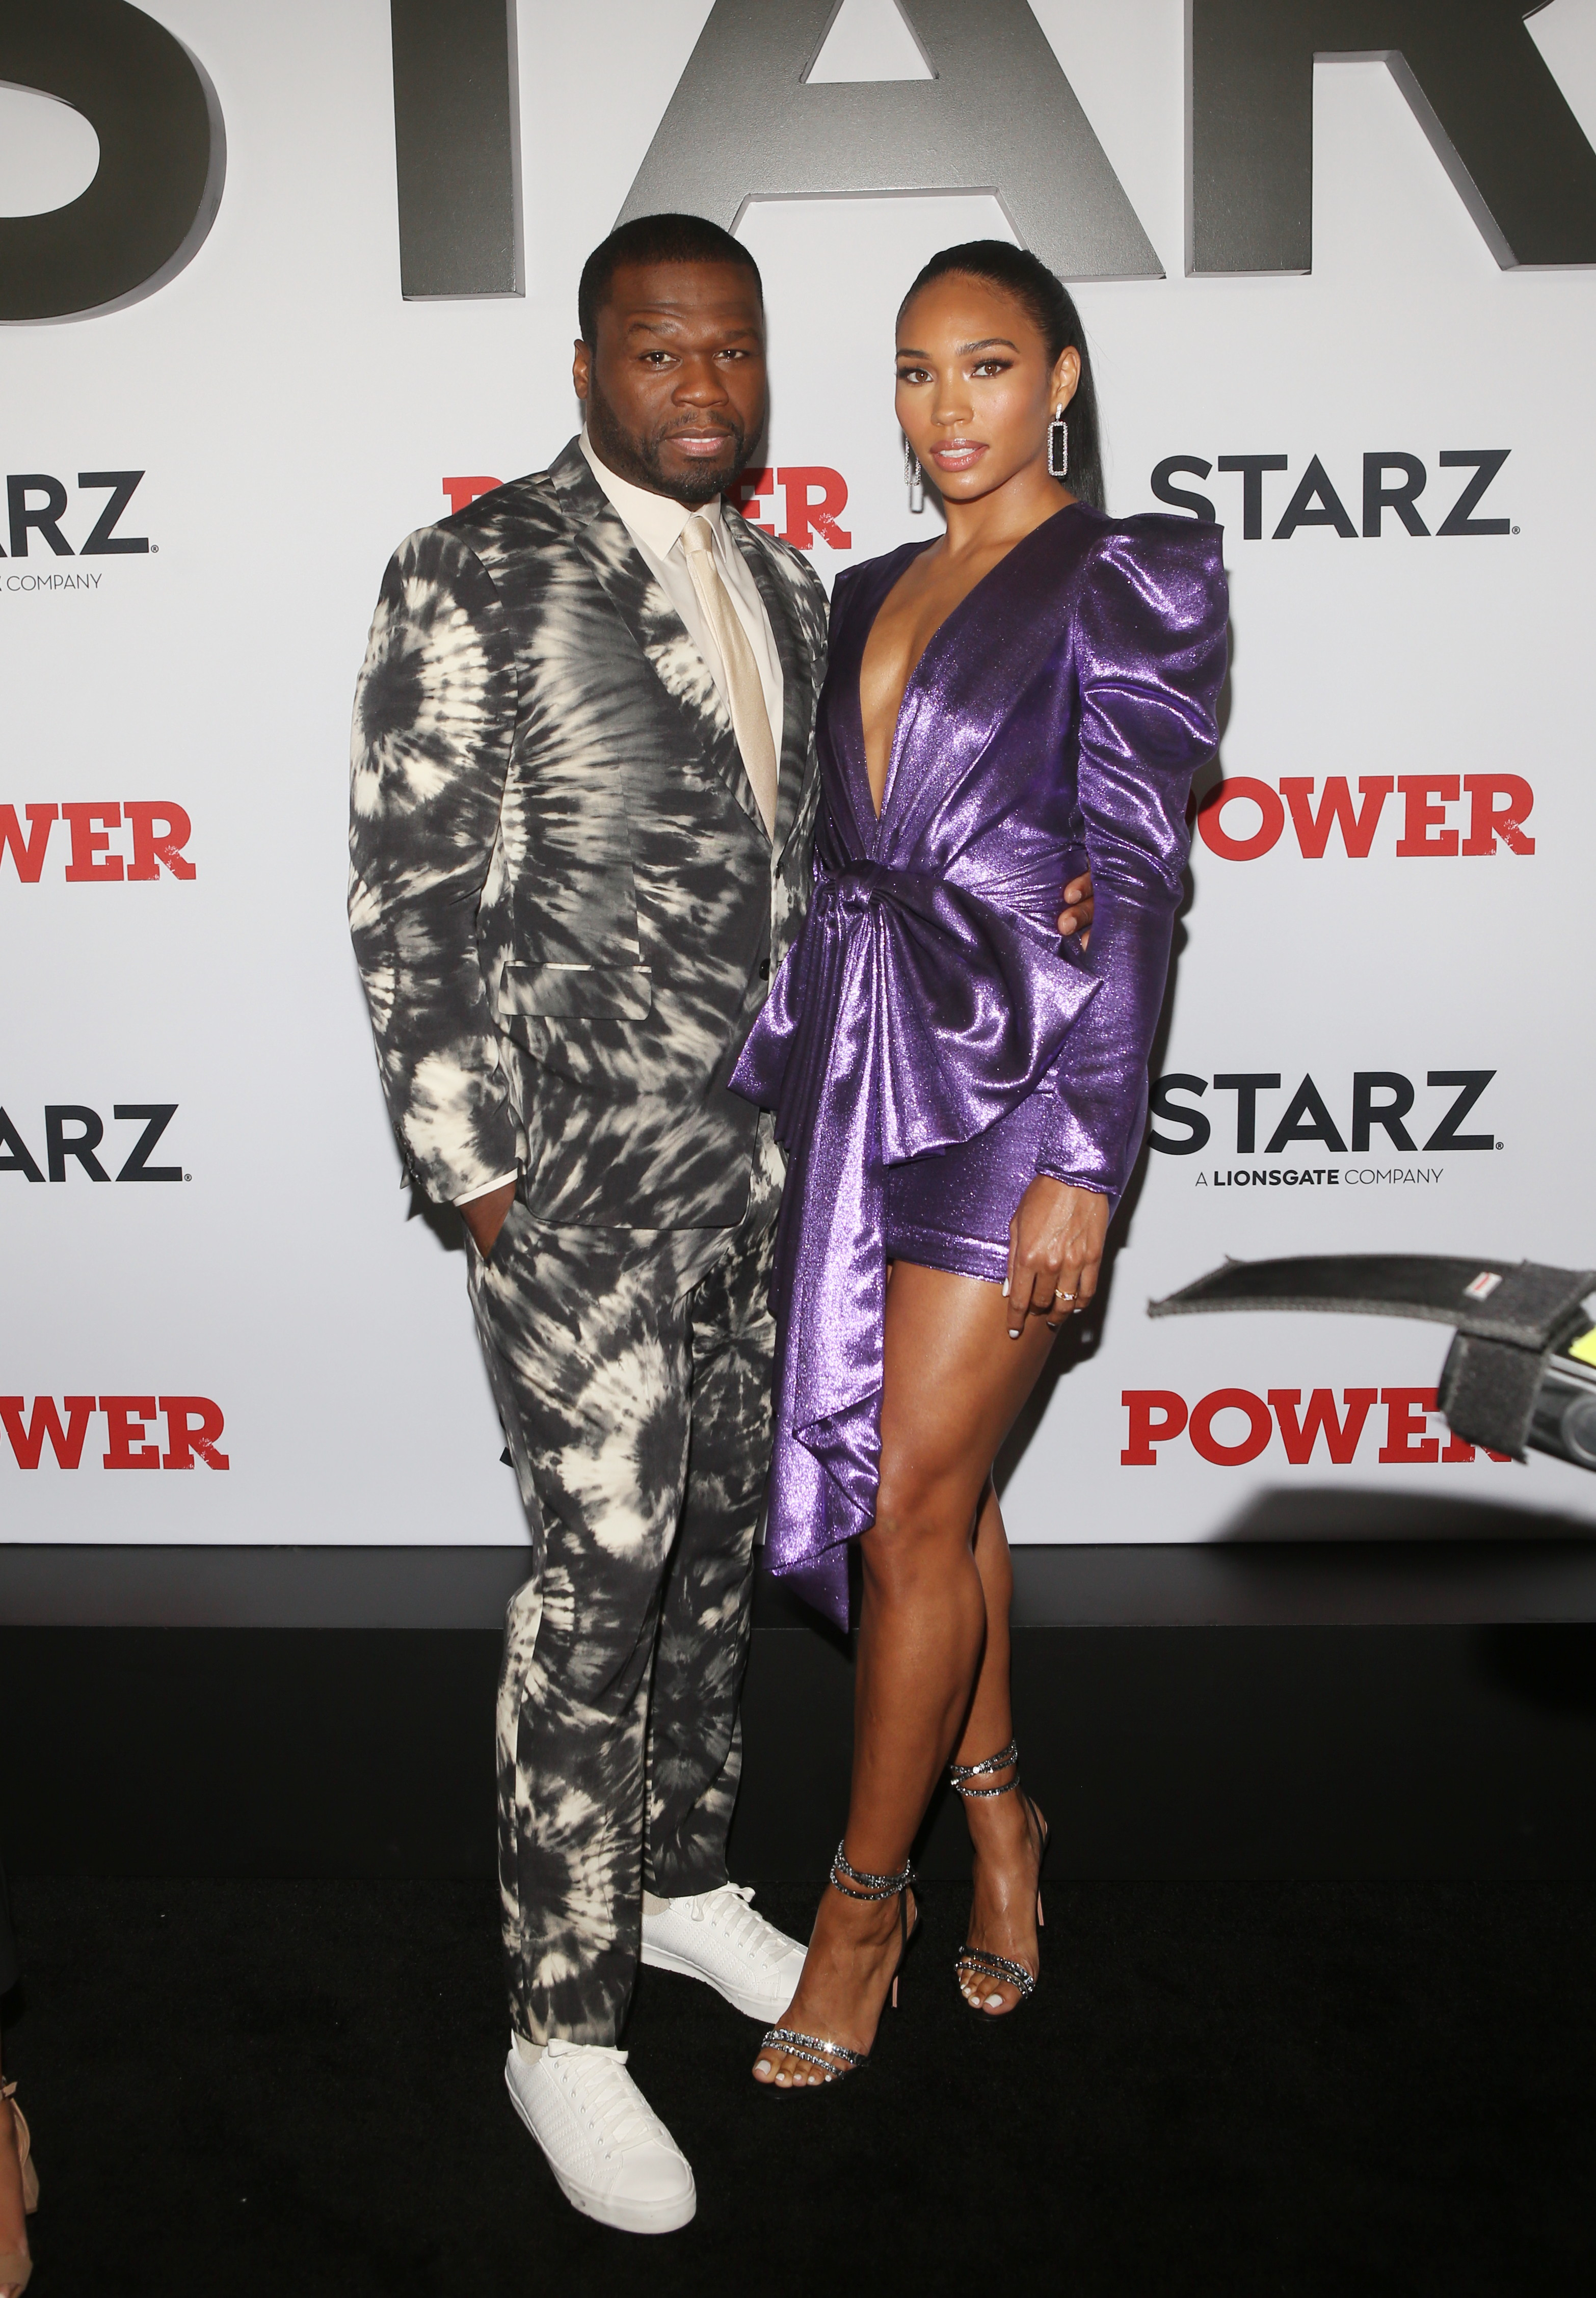 STARZ Red Carpet Event for POWER